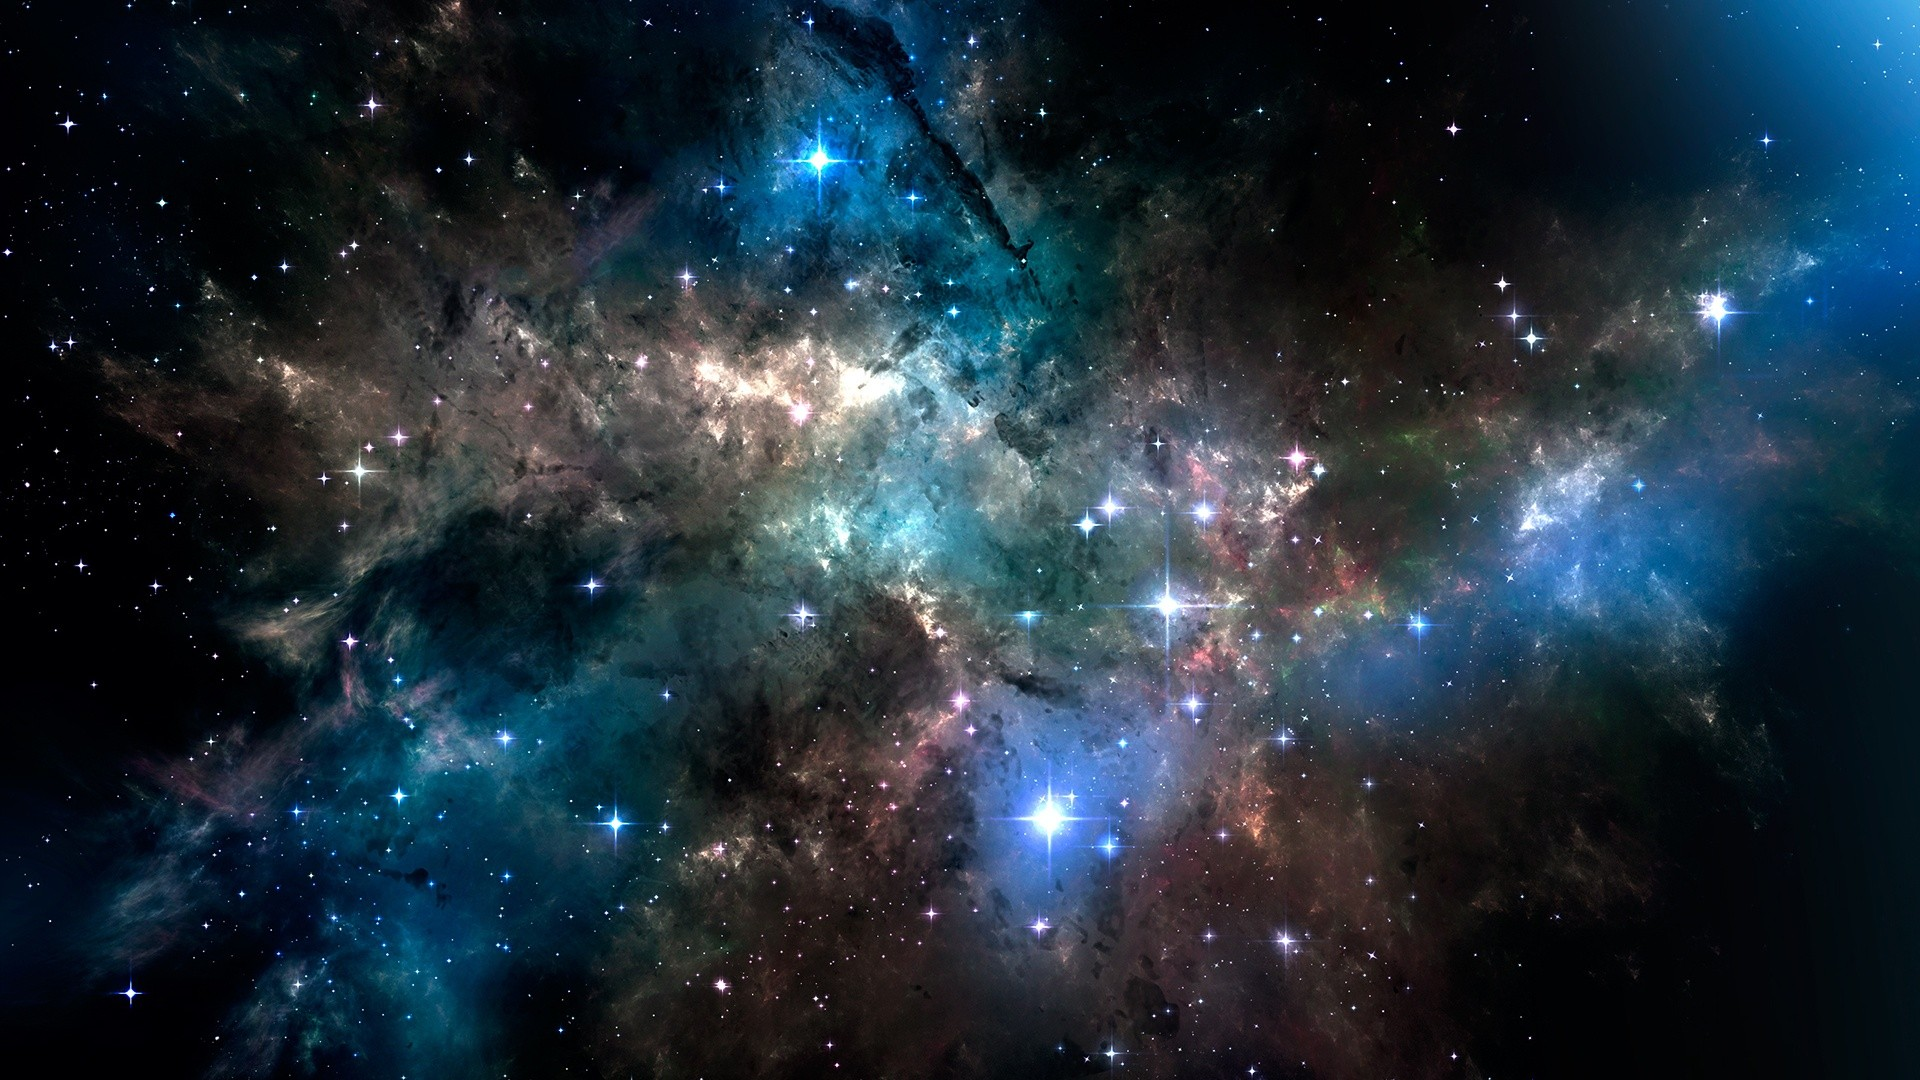 44+ hd real space wallpapers 1080p ·① download free beautiful high